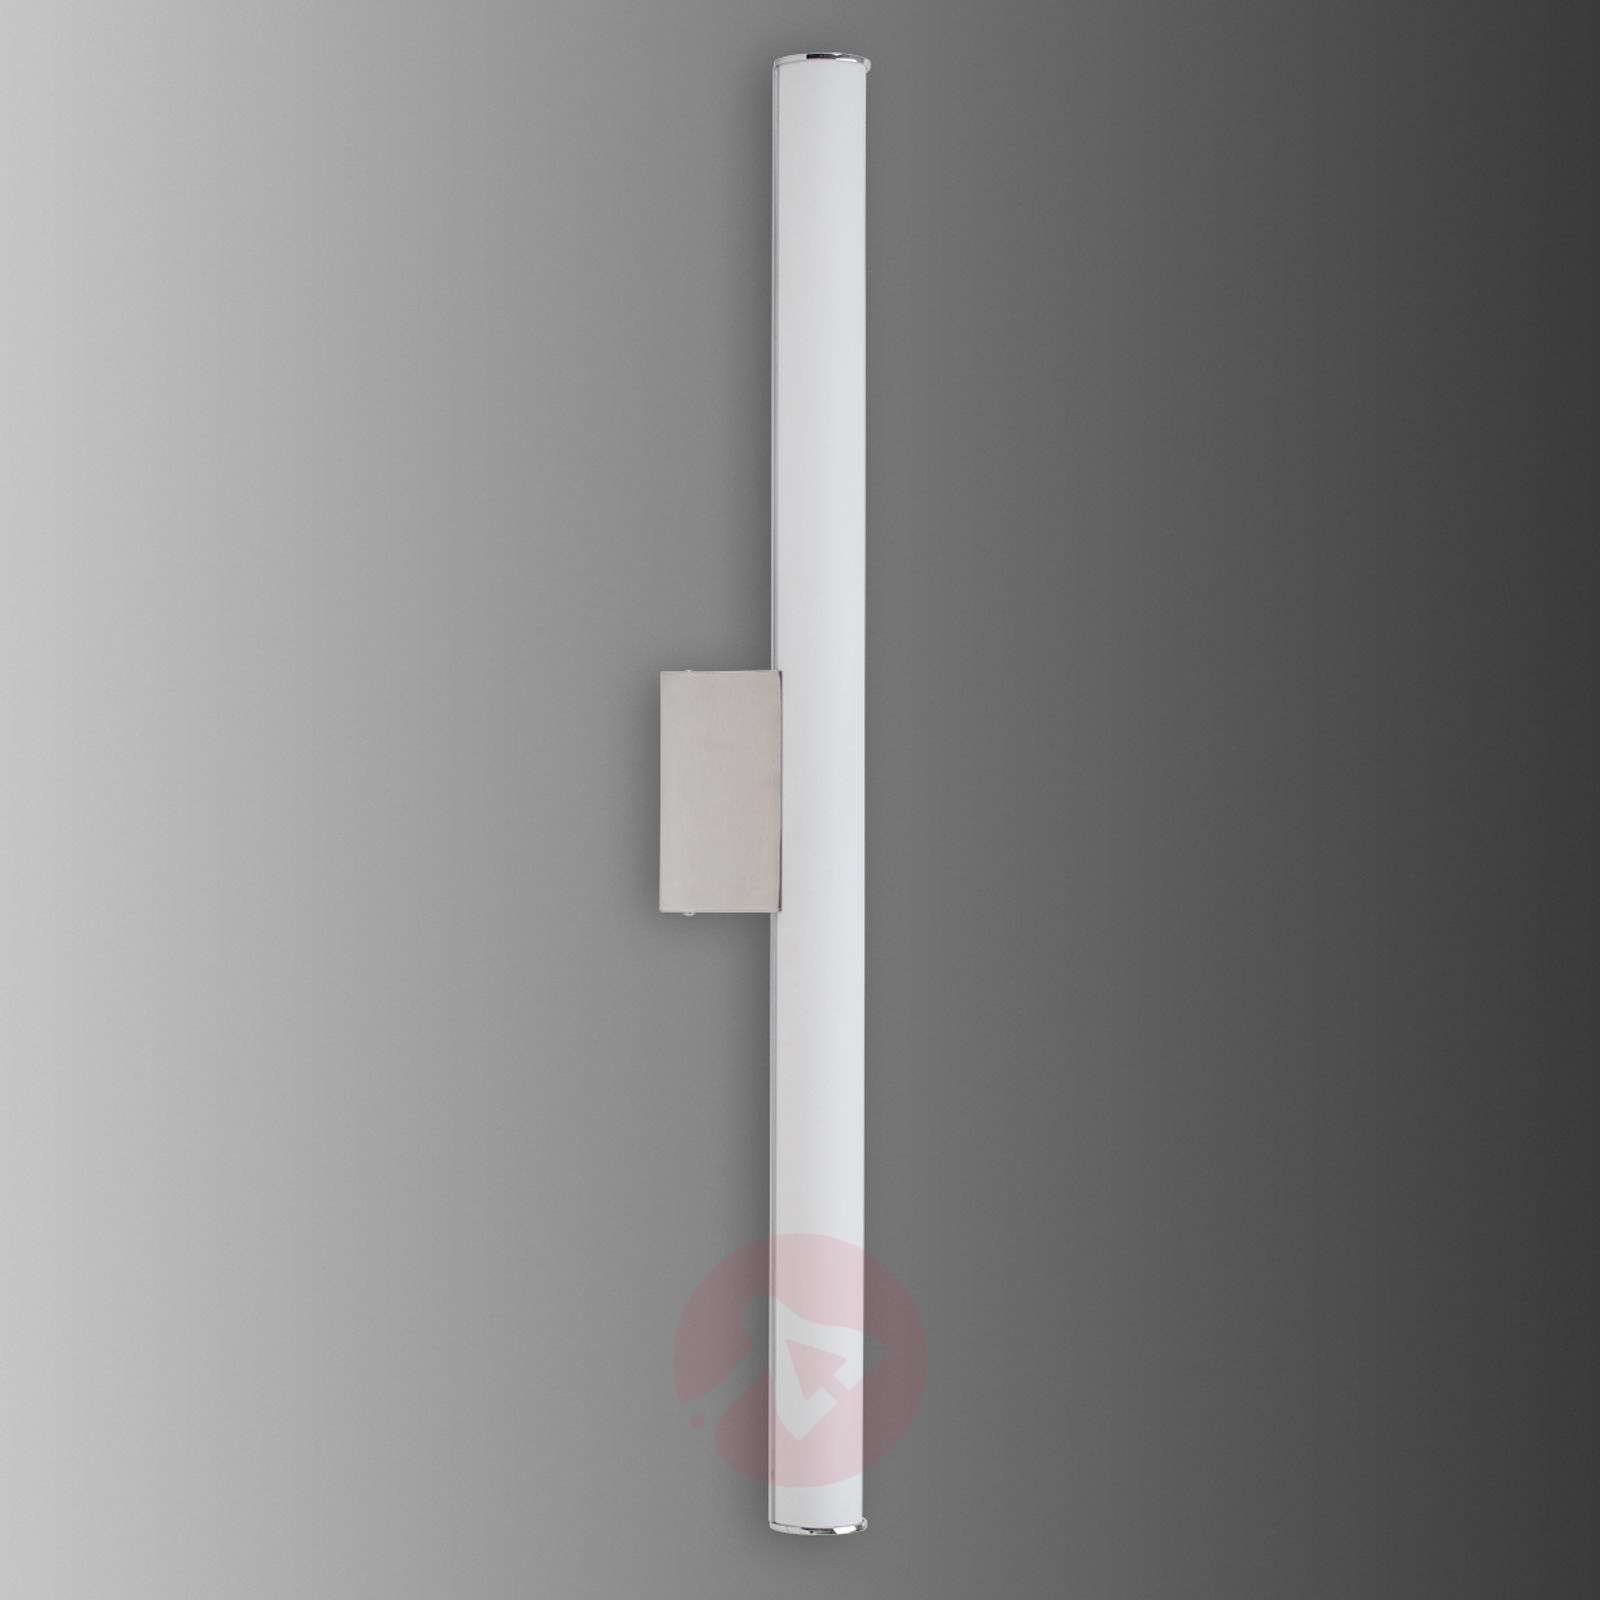 Applique LED Tube de forme tubulaire-1508961-01